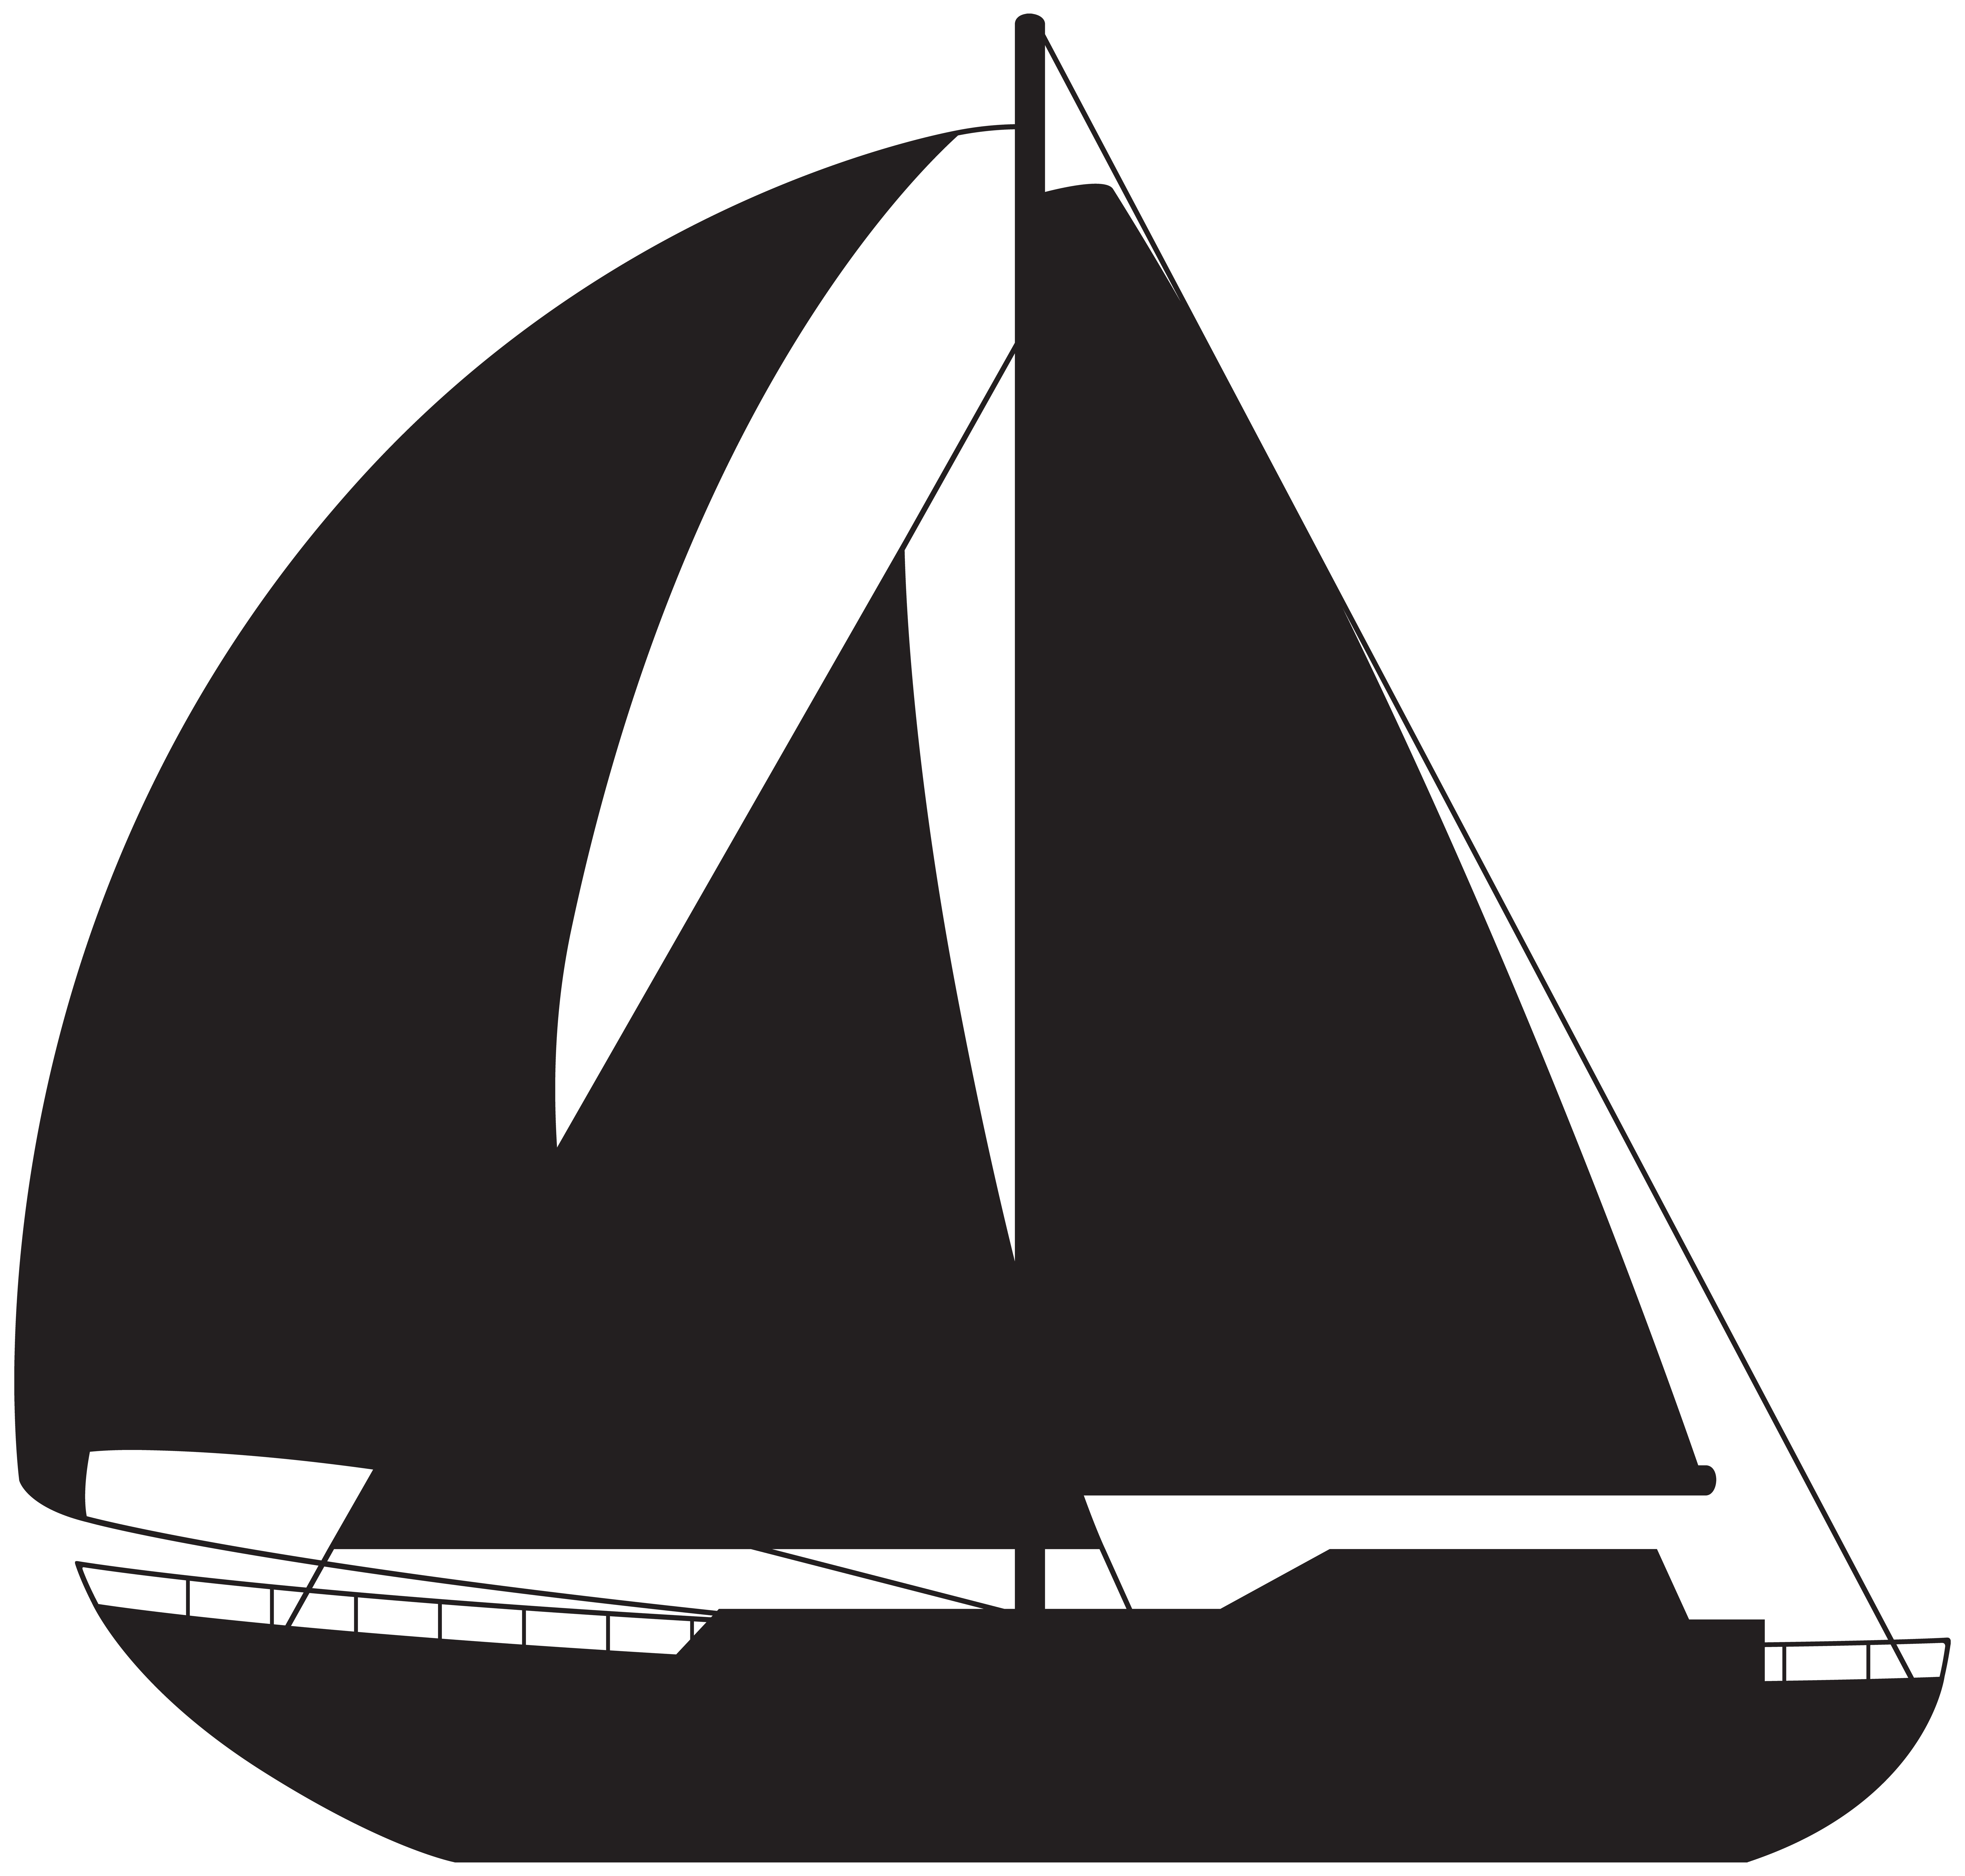 3 boats sailing away clipart banner transparent library Sailing ship Ice boat Rigging - Sailboat Silhouette PNG Clip Art ... banner transparent library